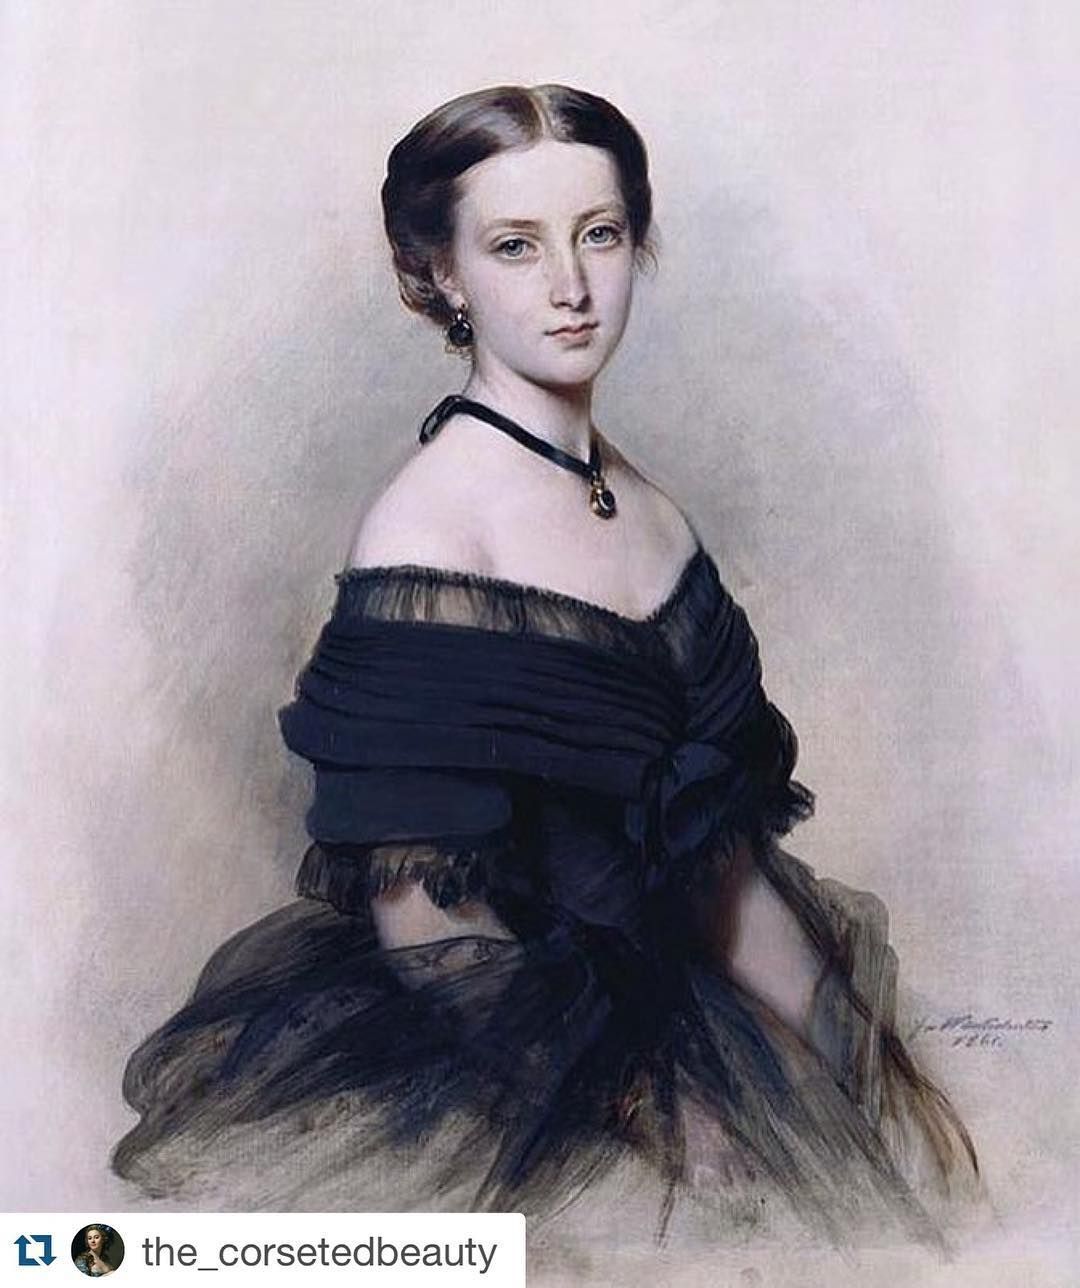 So elegant....#Repost @the_corsetedbeauty with @repostapp.  Portrait of Princess Helena of the United Kingdom by Franz Xaver Winterhalter ca. 1861. The Royal Collection  Princess Helena was the fifth child of Queen Victoria and Prince Albert. She was born 170 years ago today on 25 May 1846.  by isabellabradfordauthor